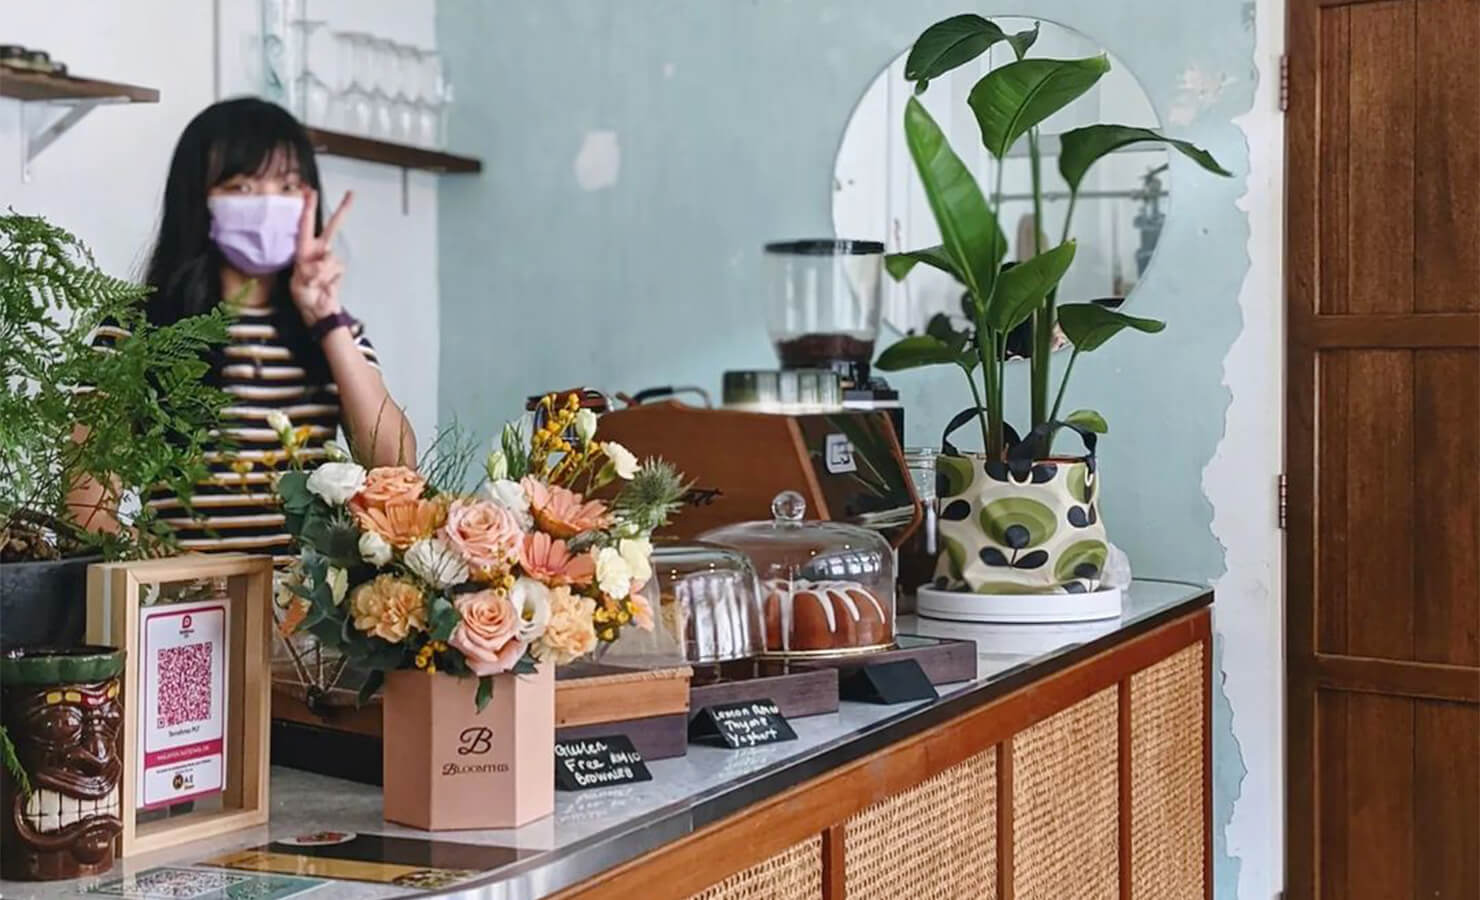 bloomthis-5-plant-flower-cafes-you-have-to-visit-02-planterchin-cafe